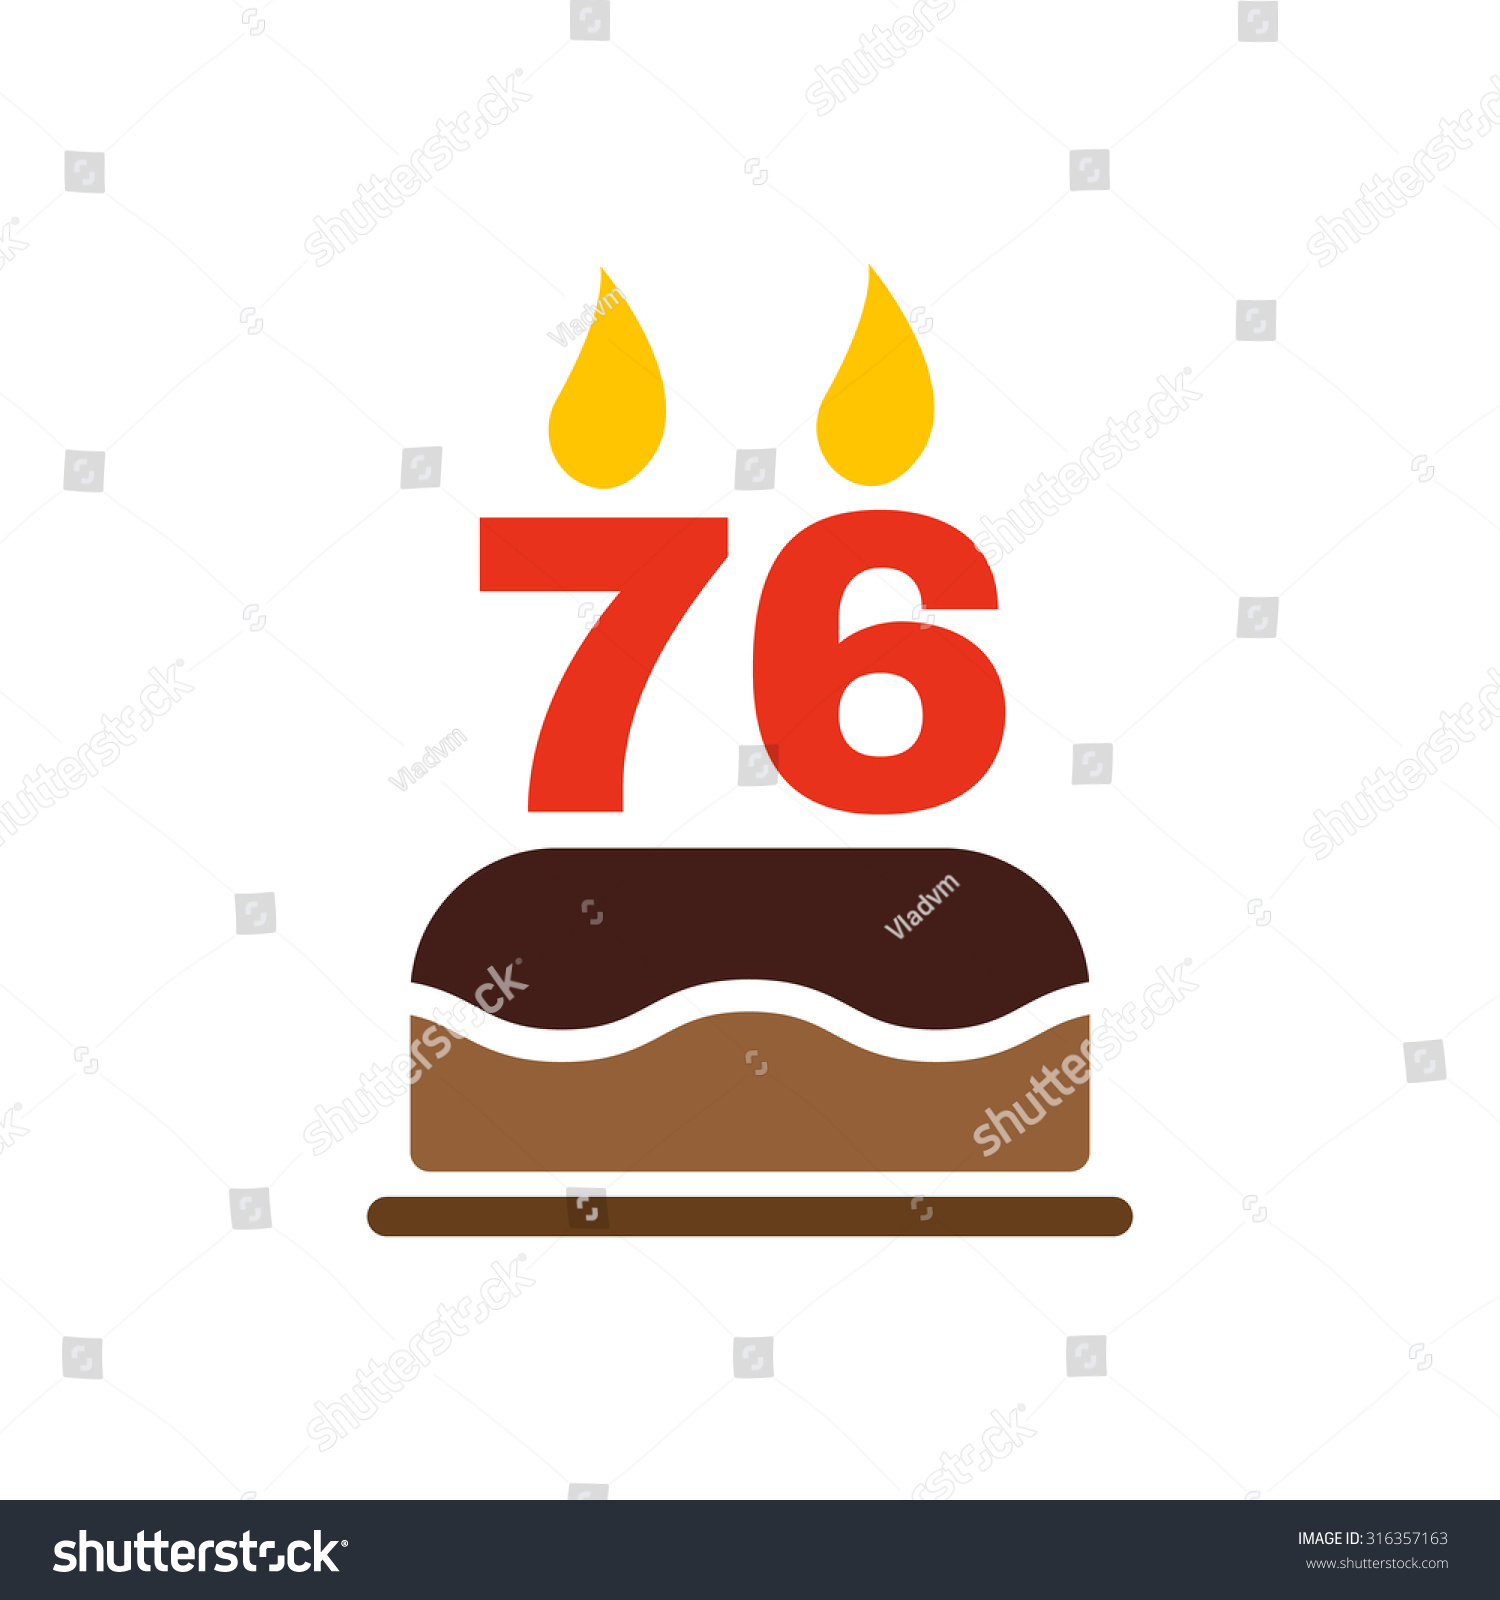 Birthday Cake Candles Form Number 76 Stock Vector 316357163